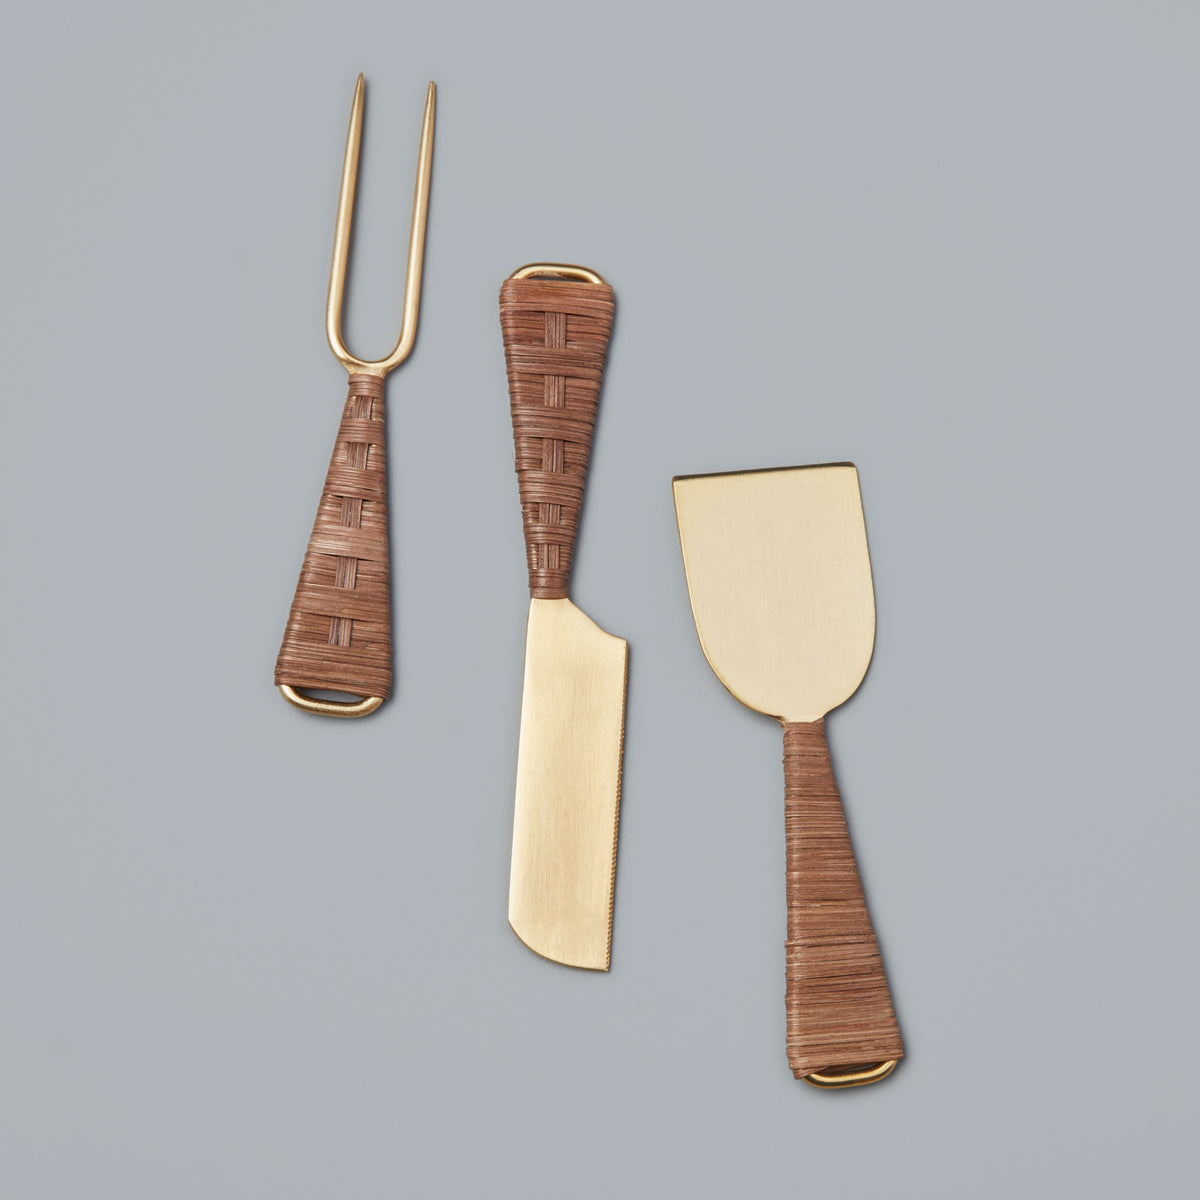 Rattan & Gold Cheese Knife Set of 3